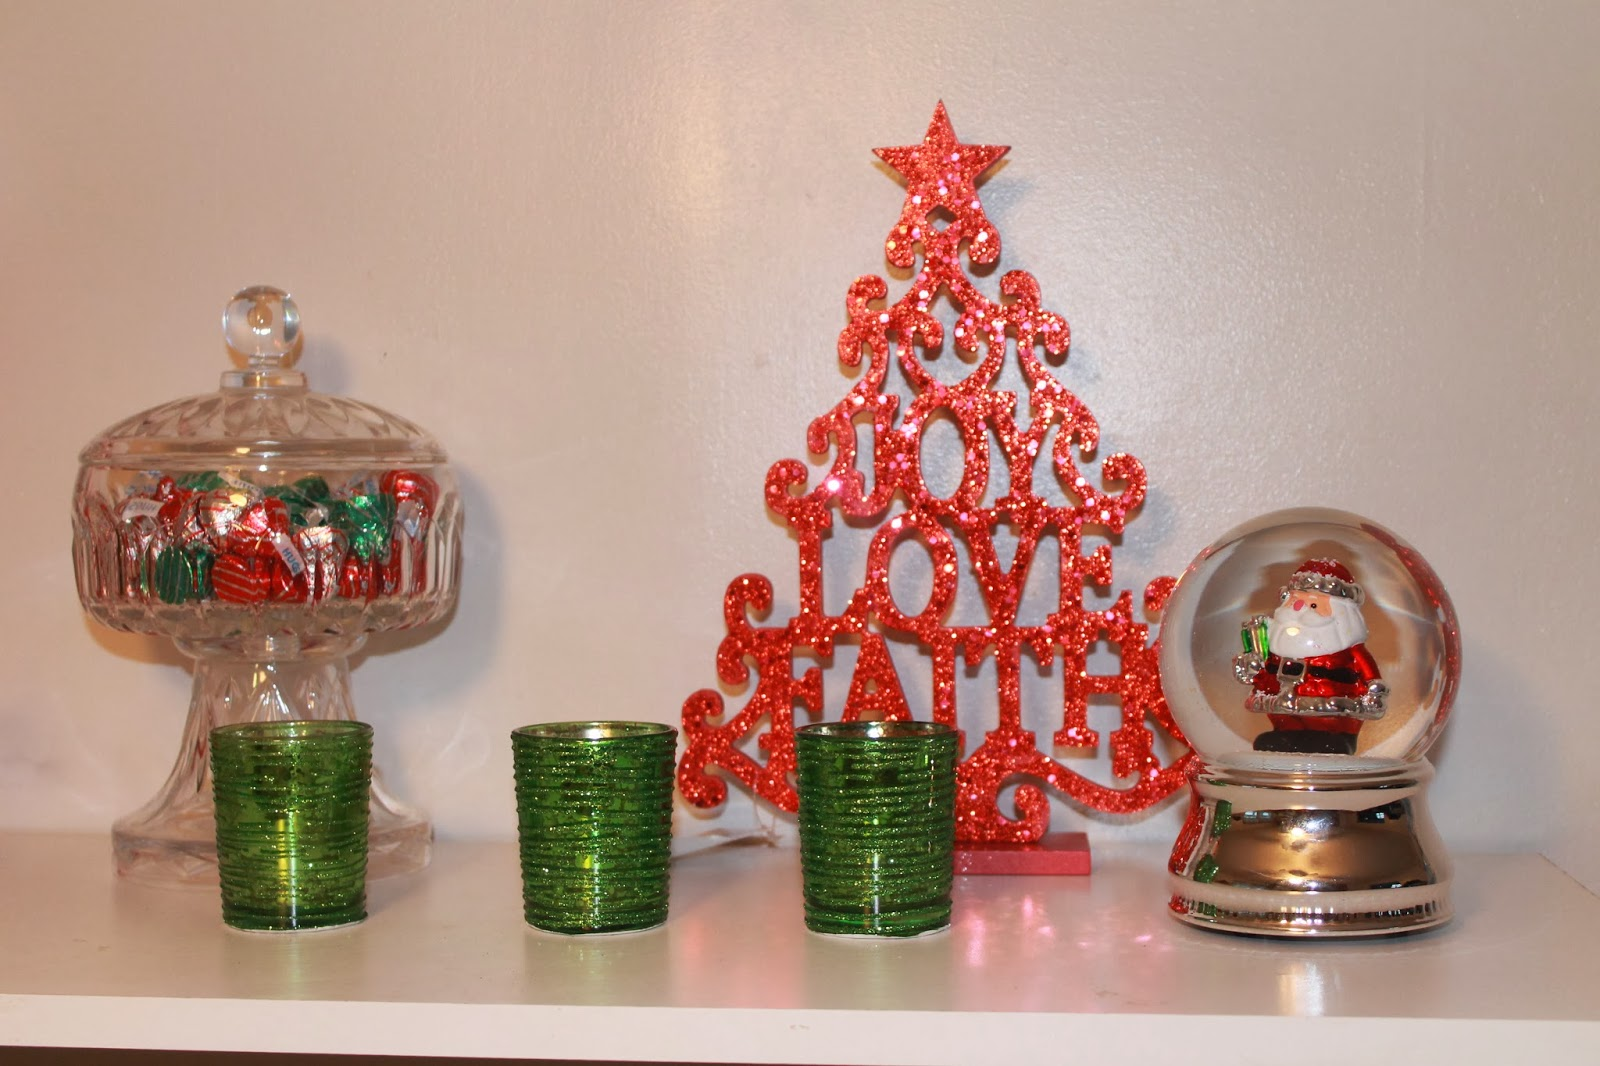 hobby lobby holiday shopping haul christmas decorations sale - Christmas Decorations Sale